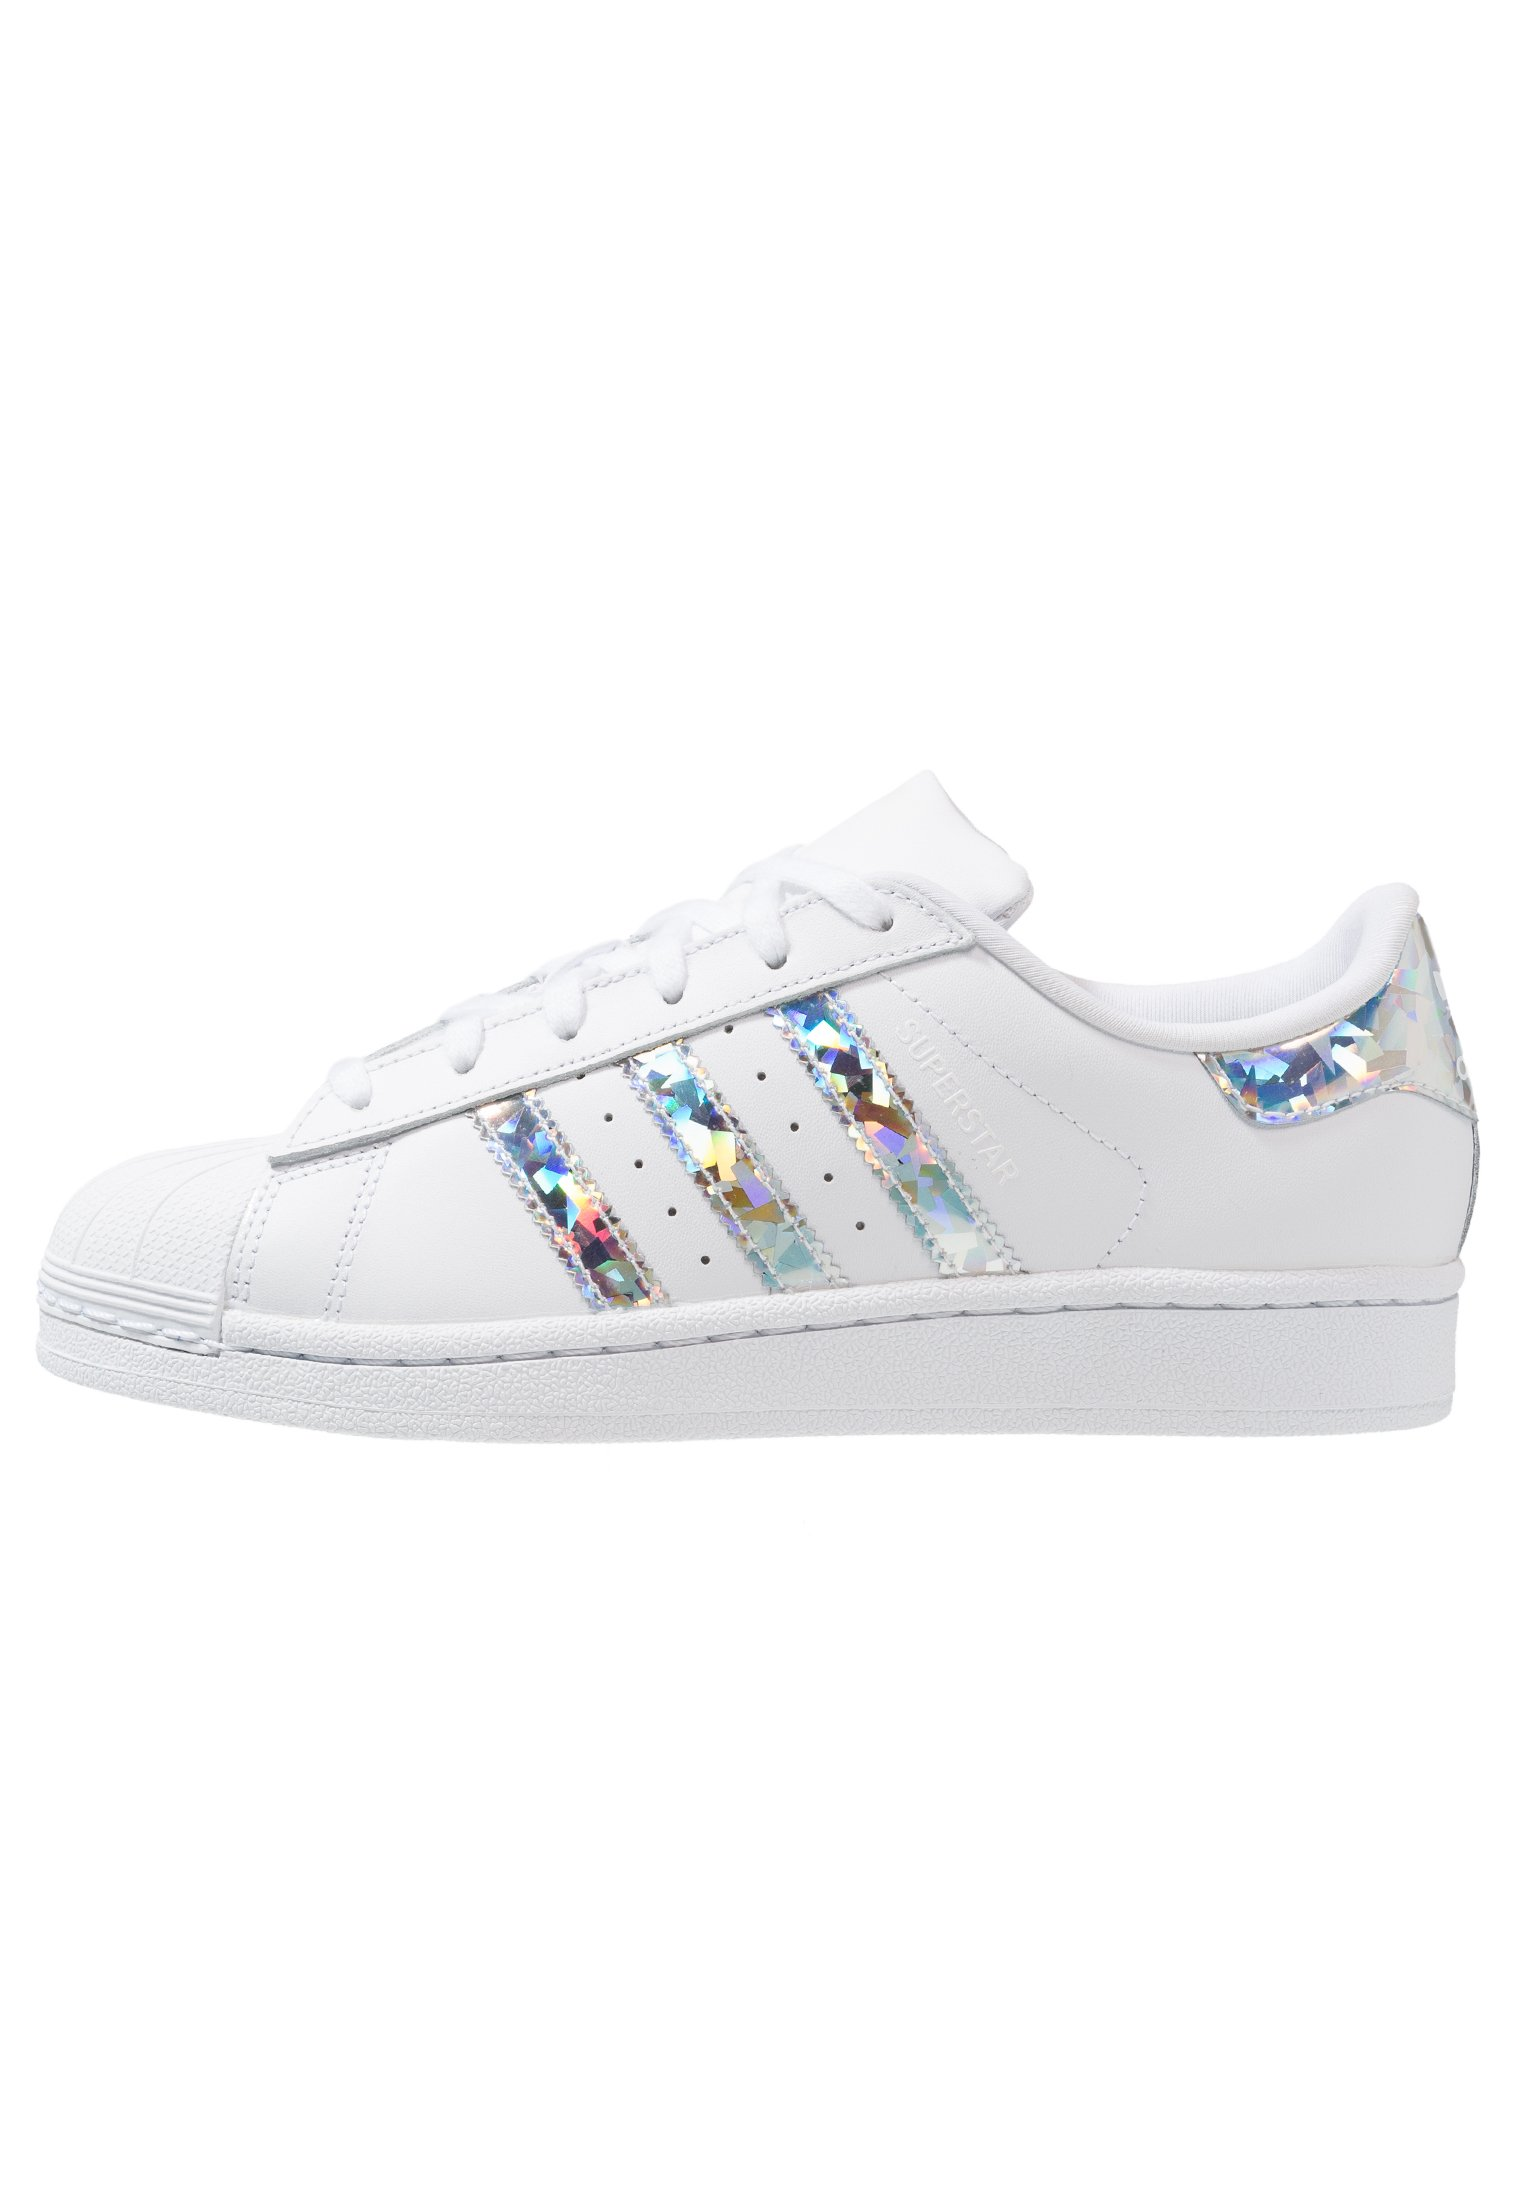 adidas bimba superstar tennis basse